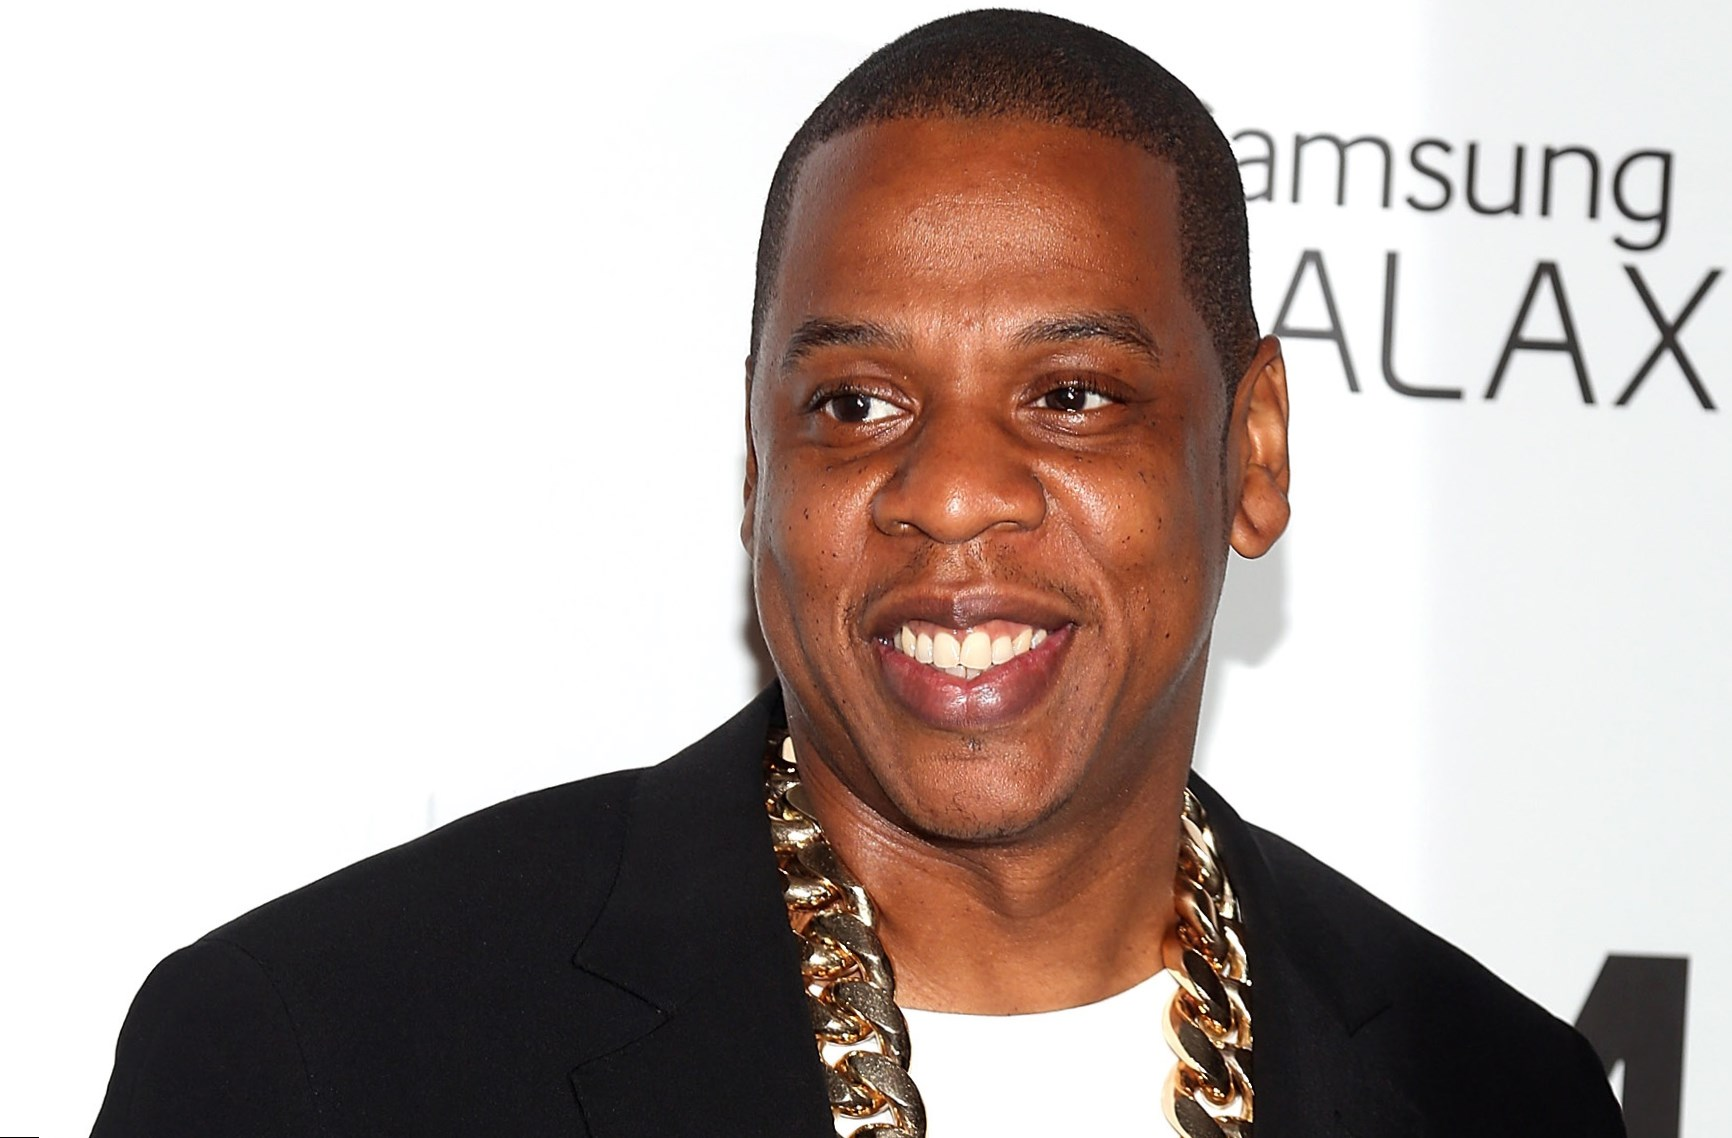 jay z songs image information starschanges com